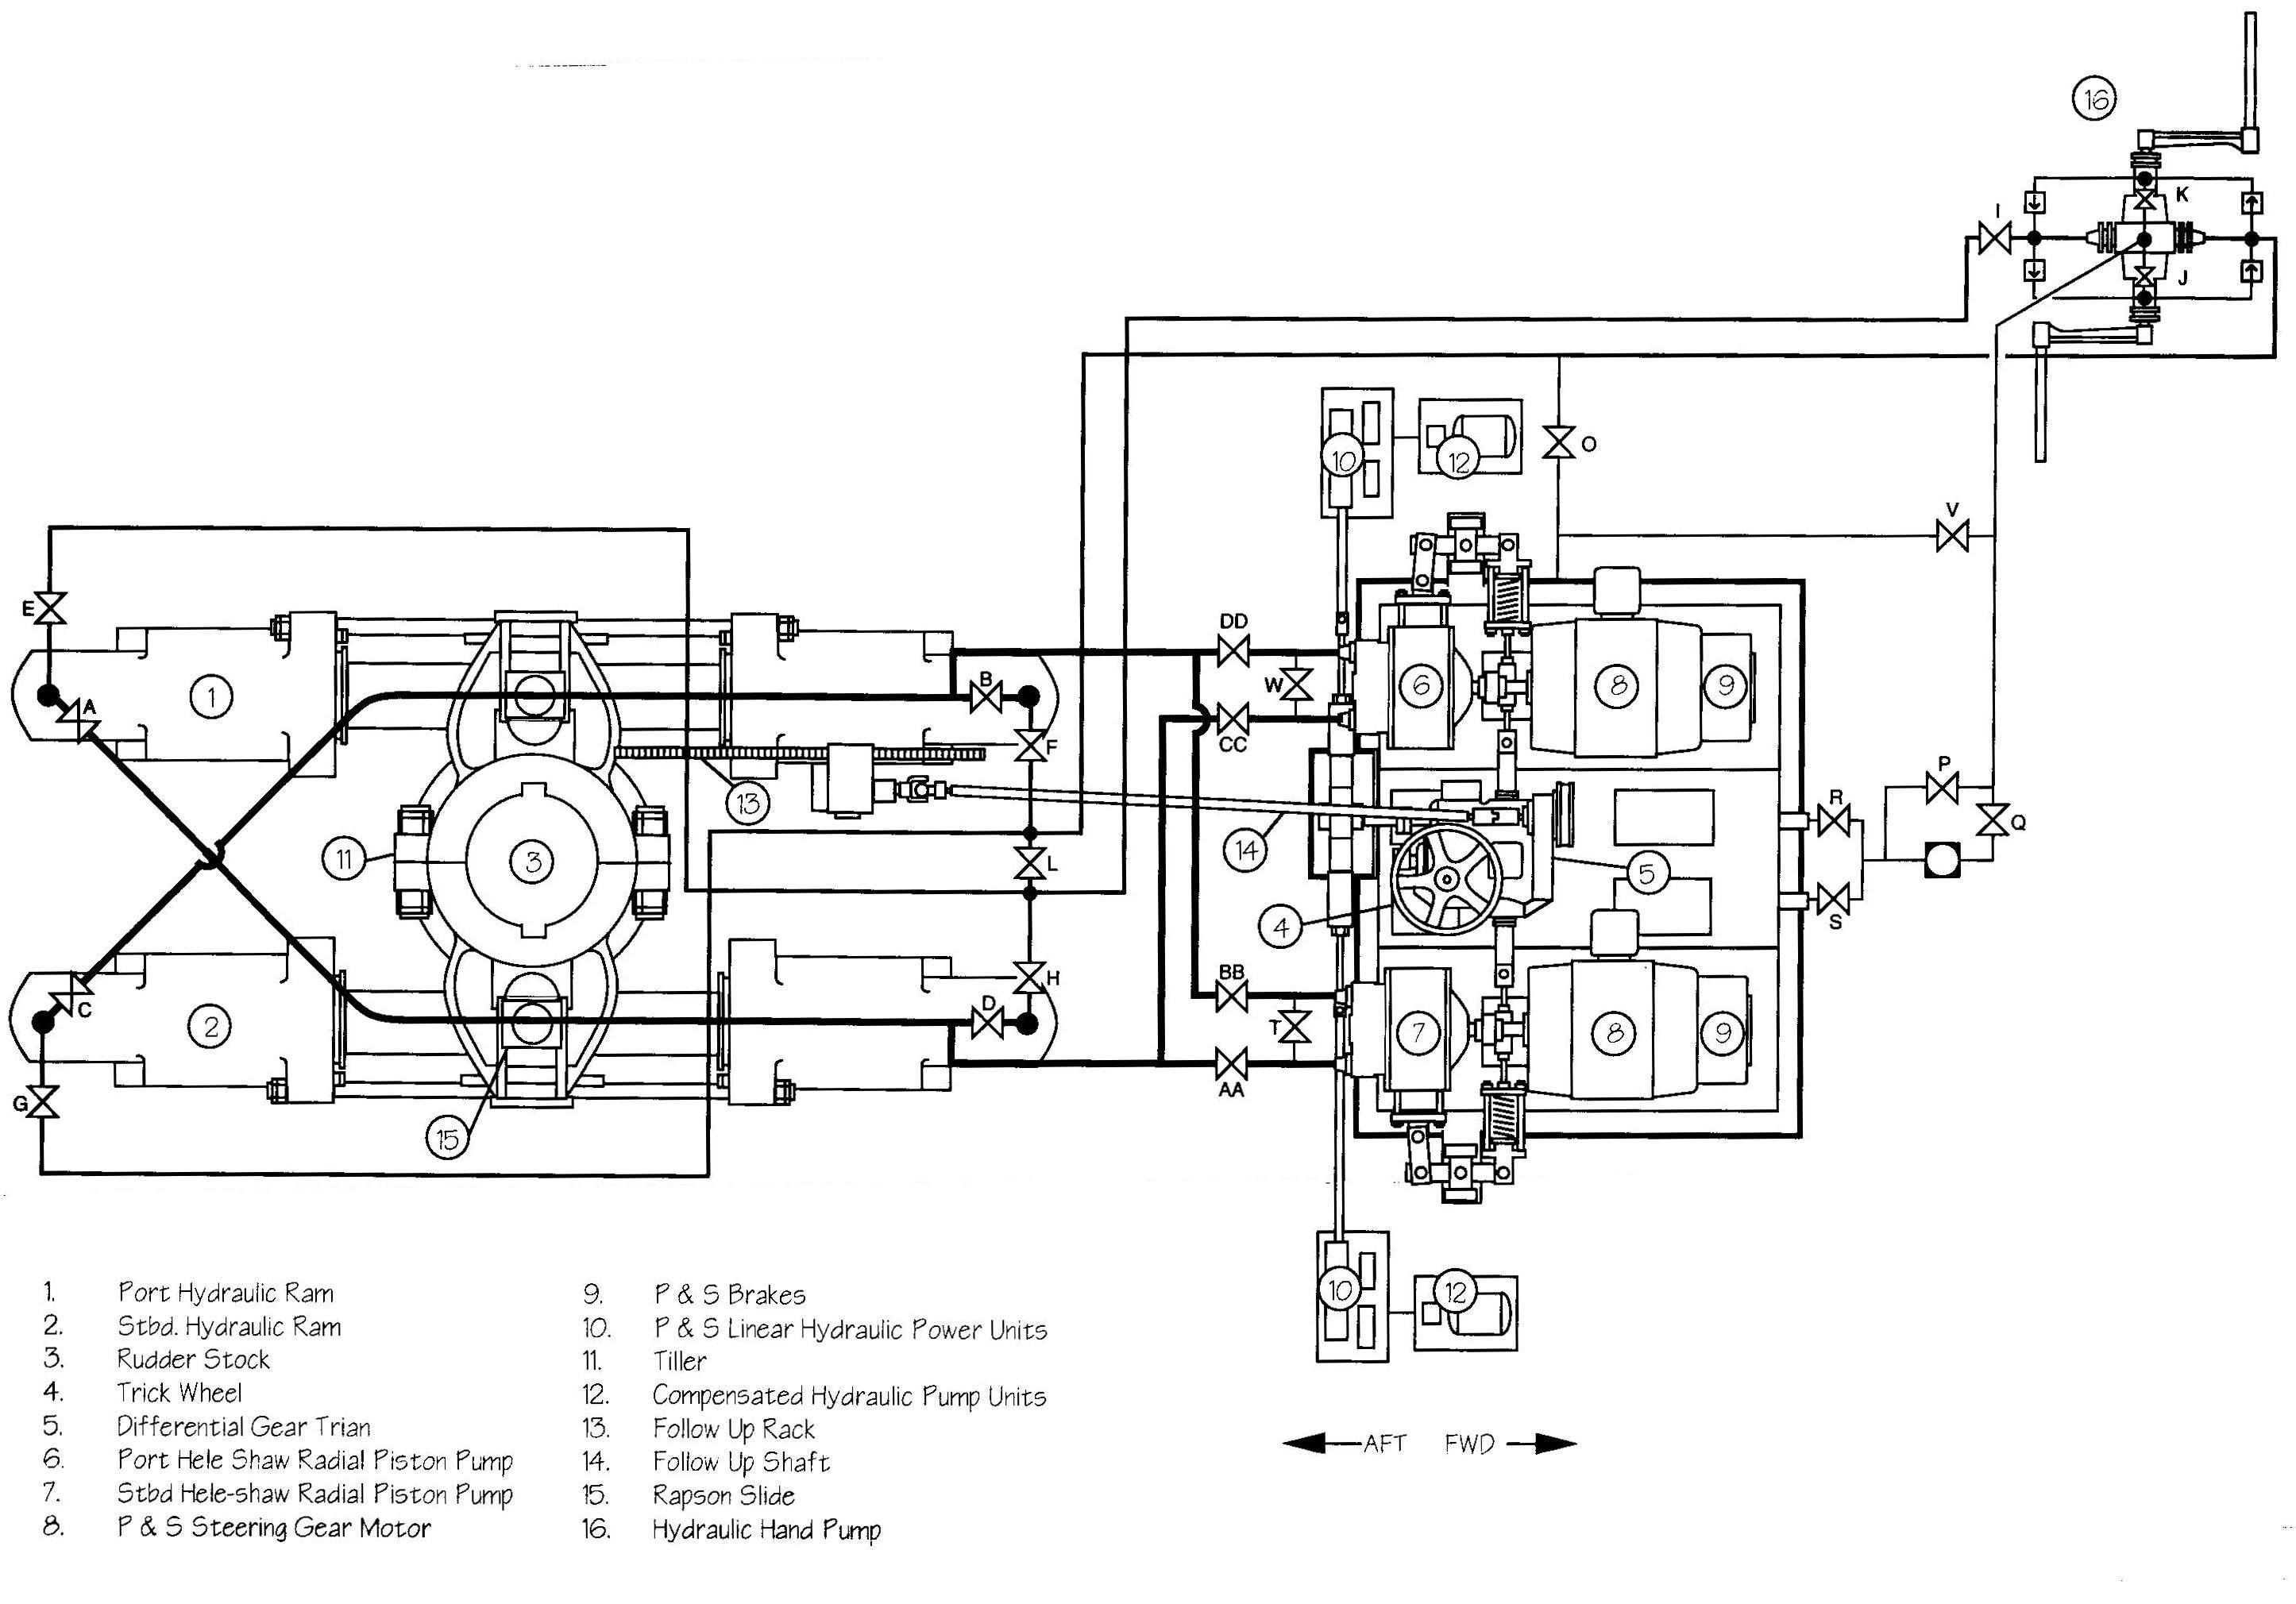 hydraulic pump diagram a page a day from the truly useful